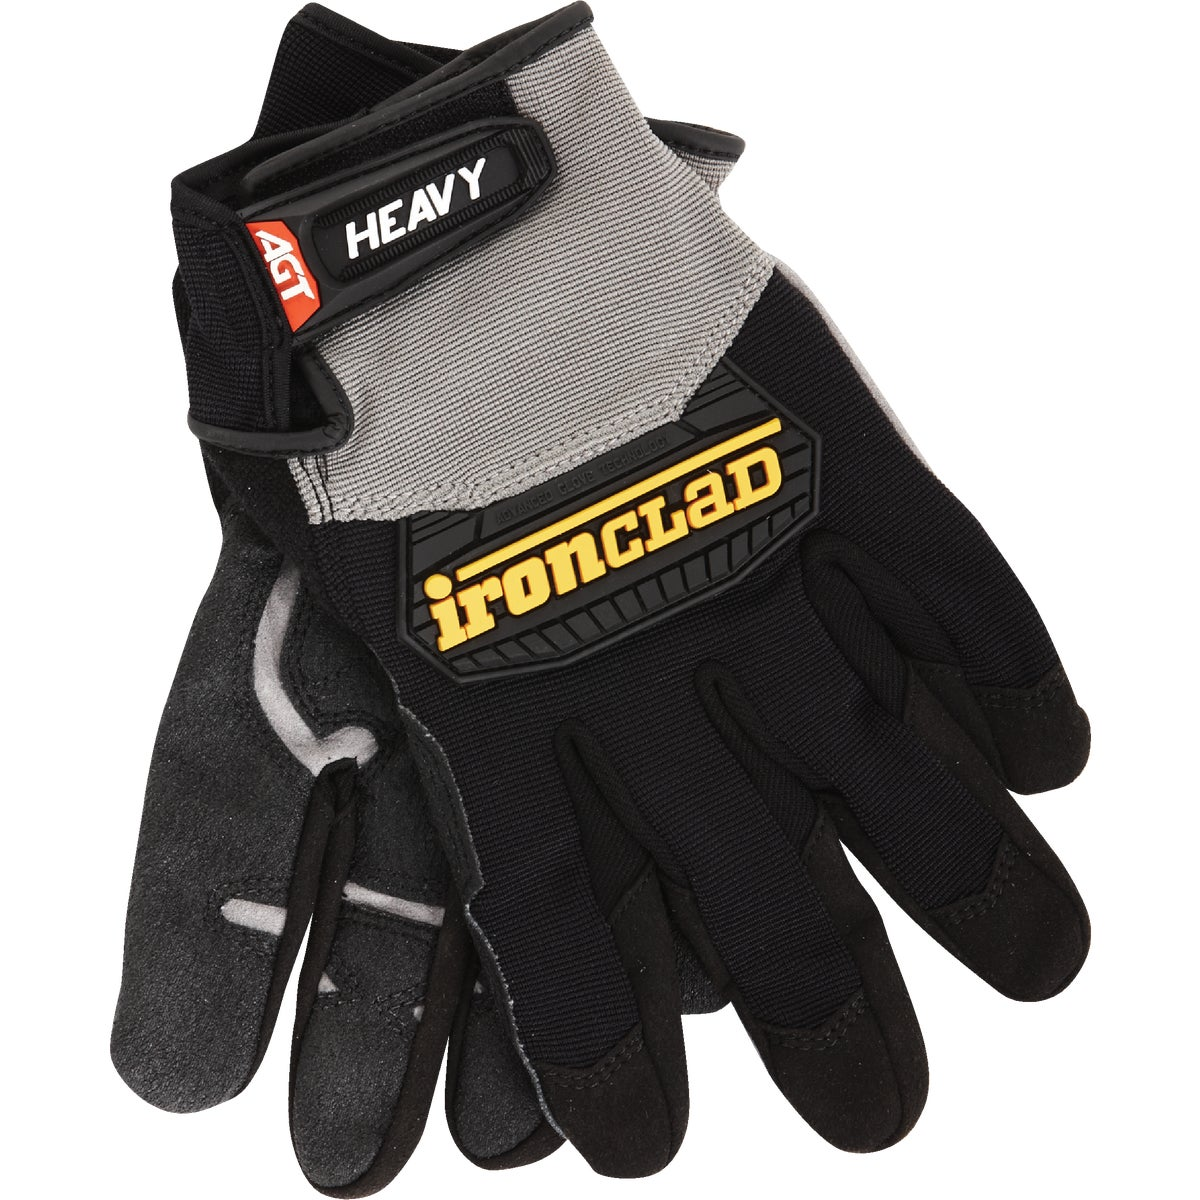 XL HEAVY UTILITY GLOVE - HUG2-05-XL by Ironclad Performance